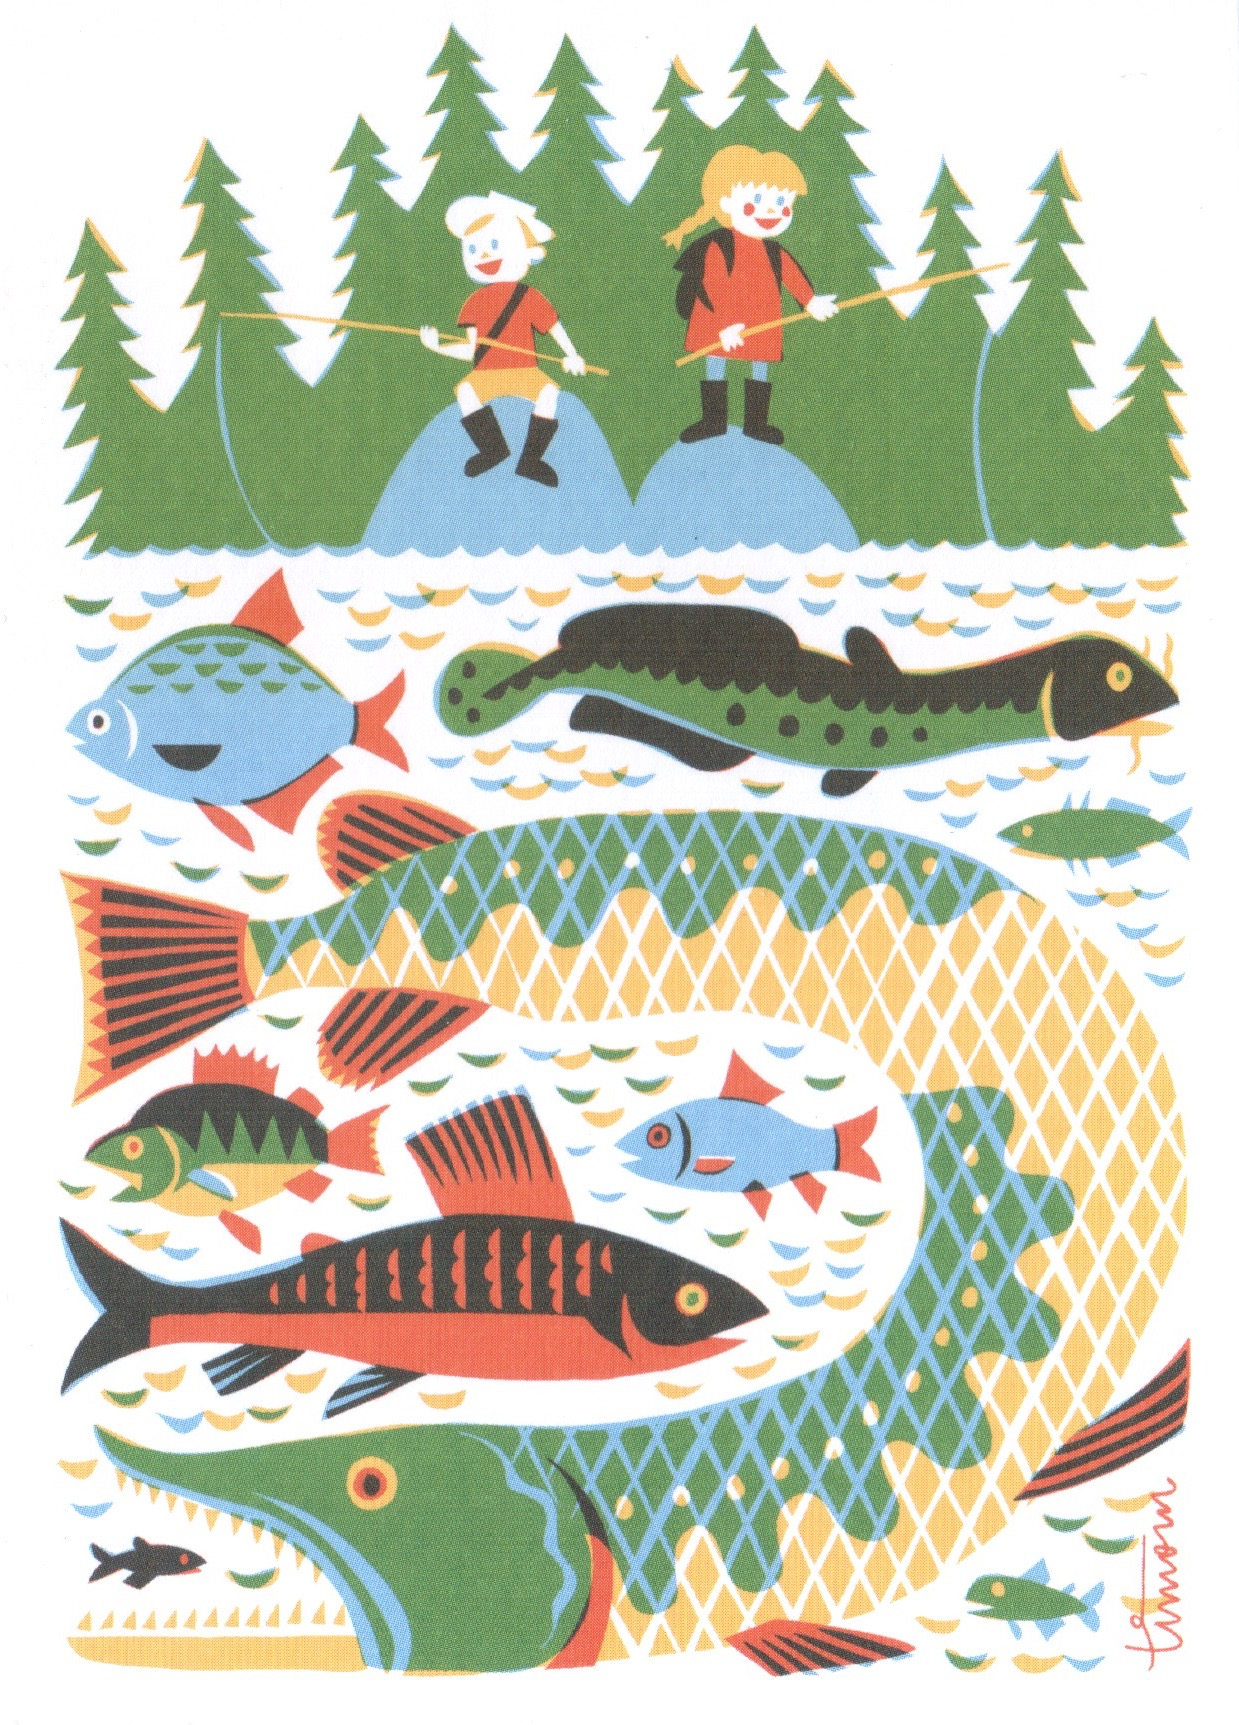 Illustration by Timo Manttari. Publisher: EU Ecolabelled Paper